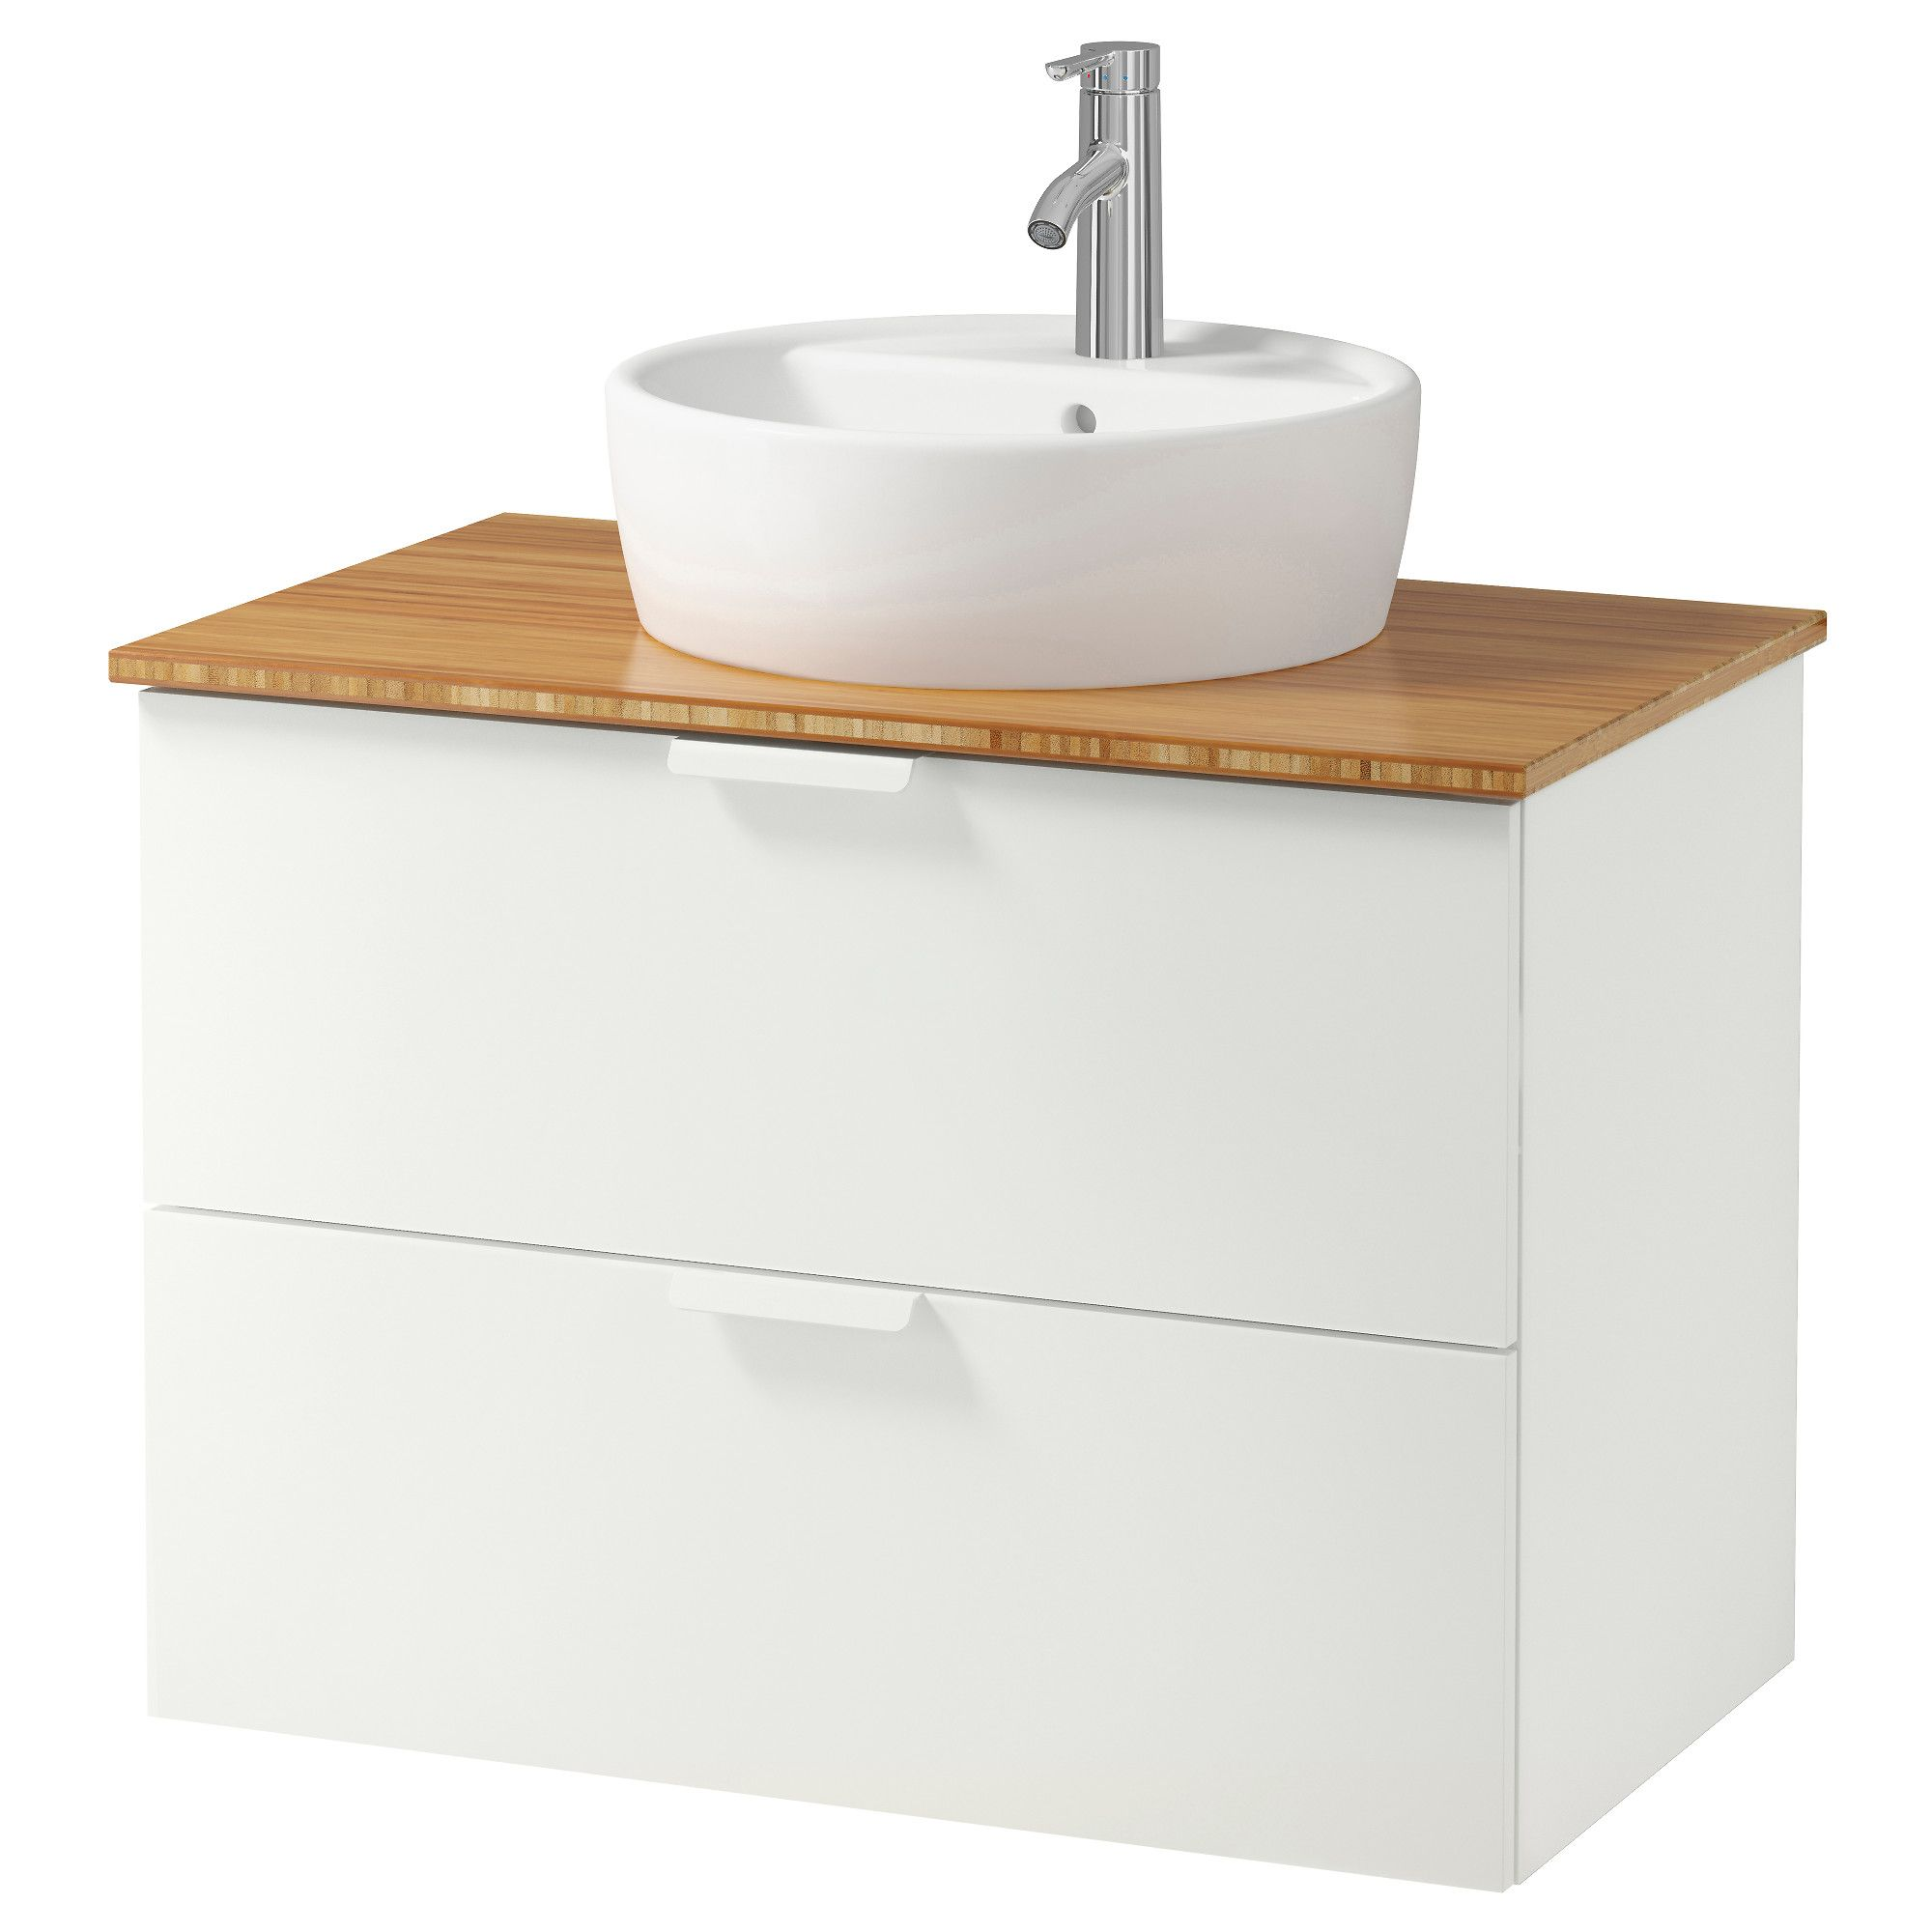 Bamboo bathroom shelf unit - Sink Cabinets Bathroom Ikea Two Of These Could Be Placed Side By Side And Could Have Some Space In Between For A Wall Mounted Or Free Standing Storage